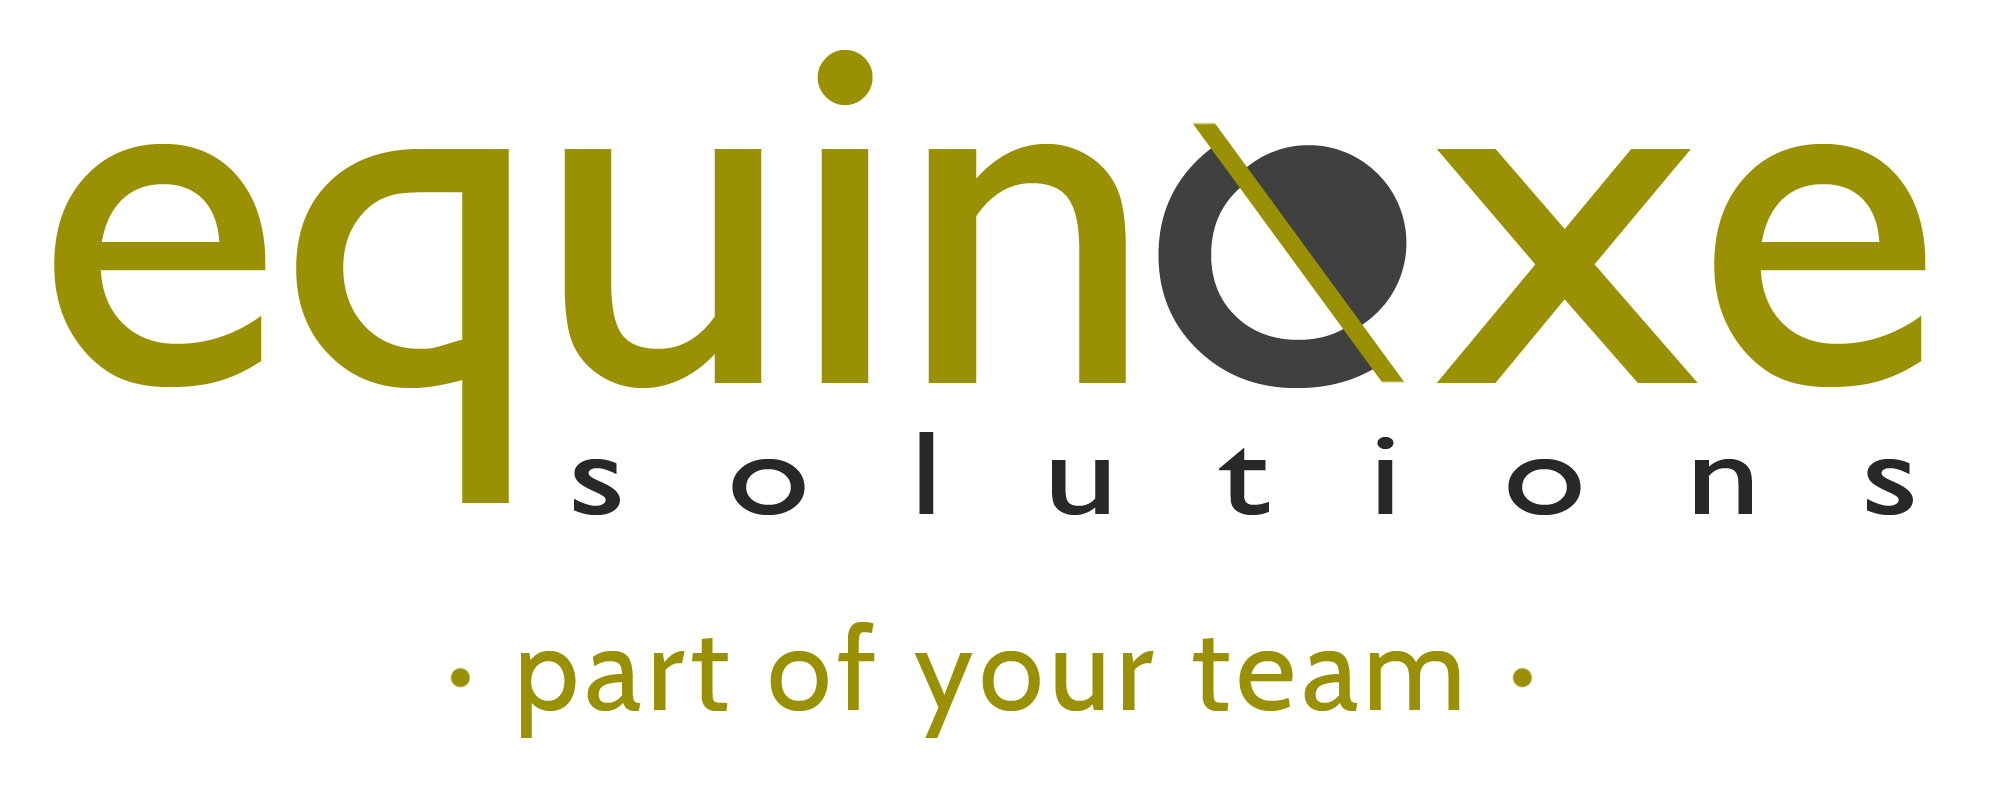 Equinoxe-logo-green-and-black.png